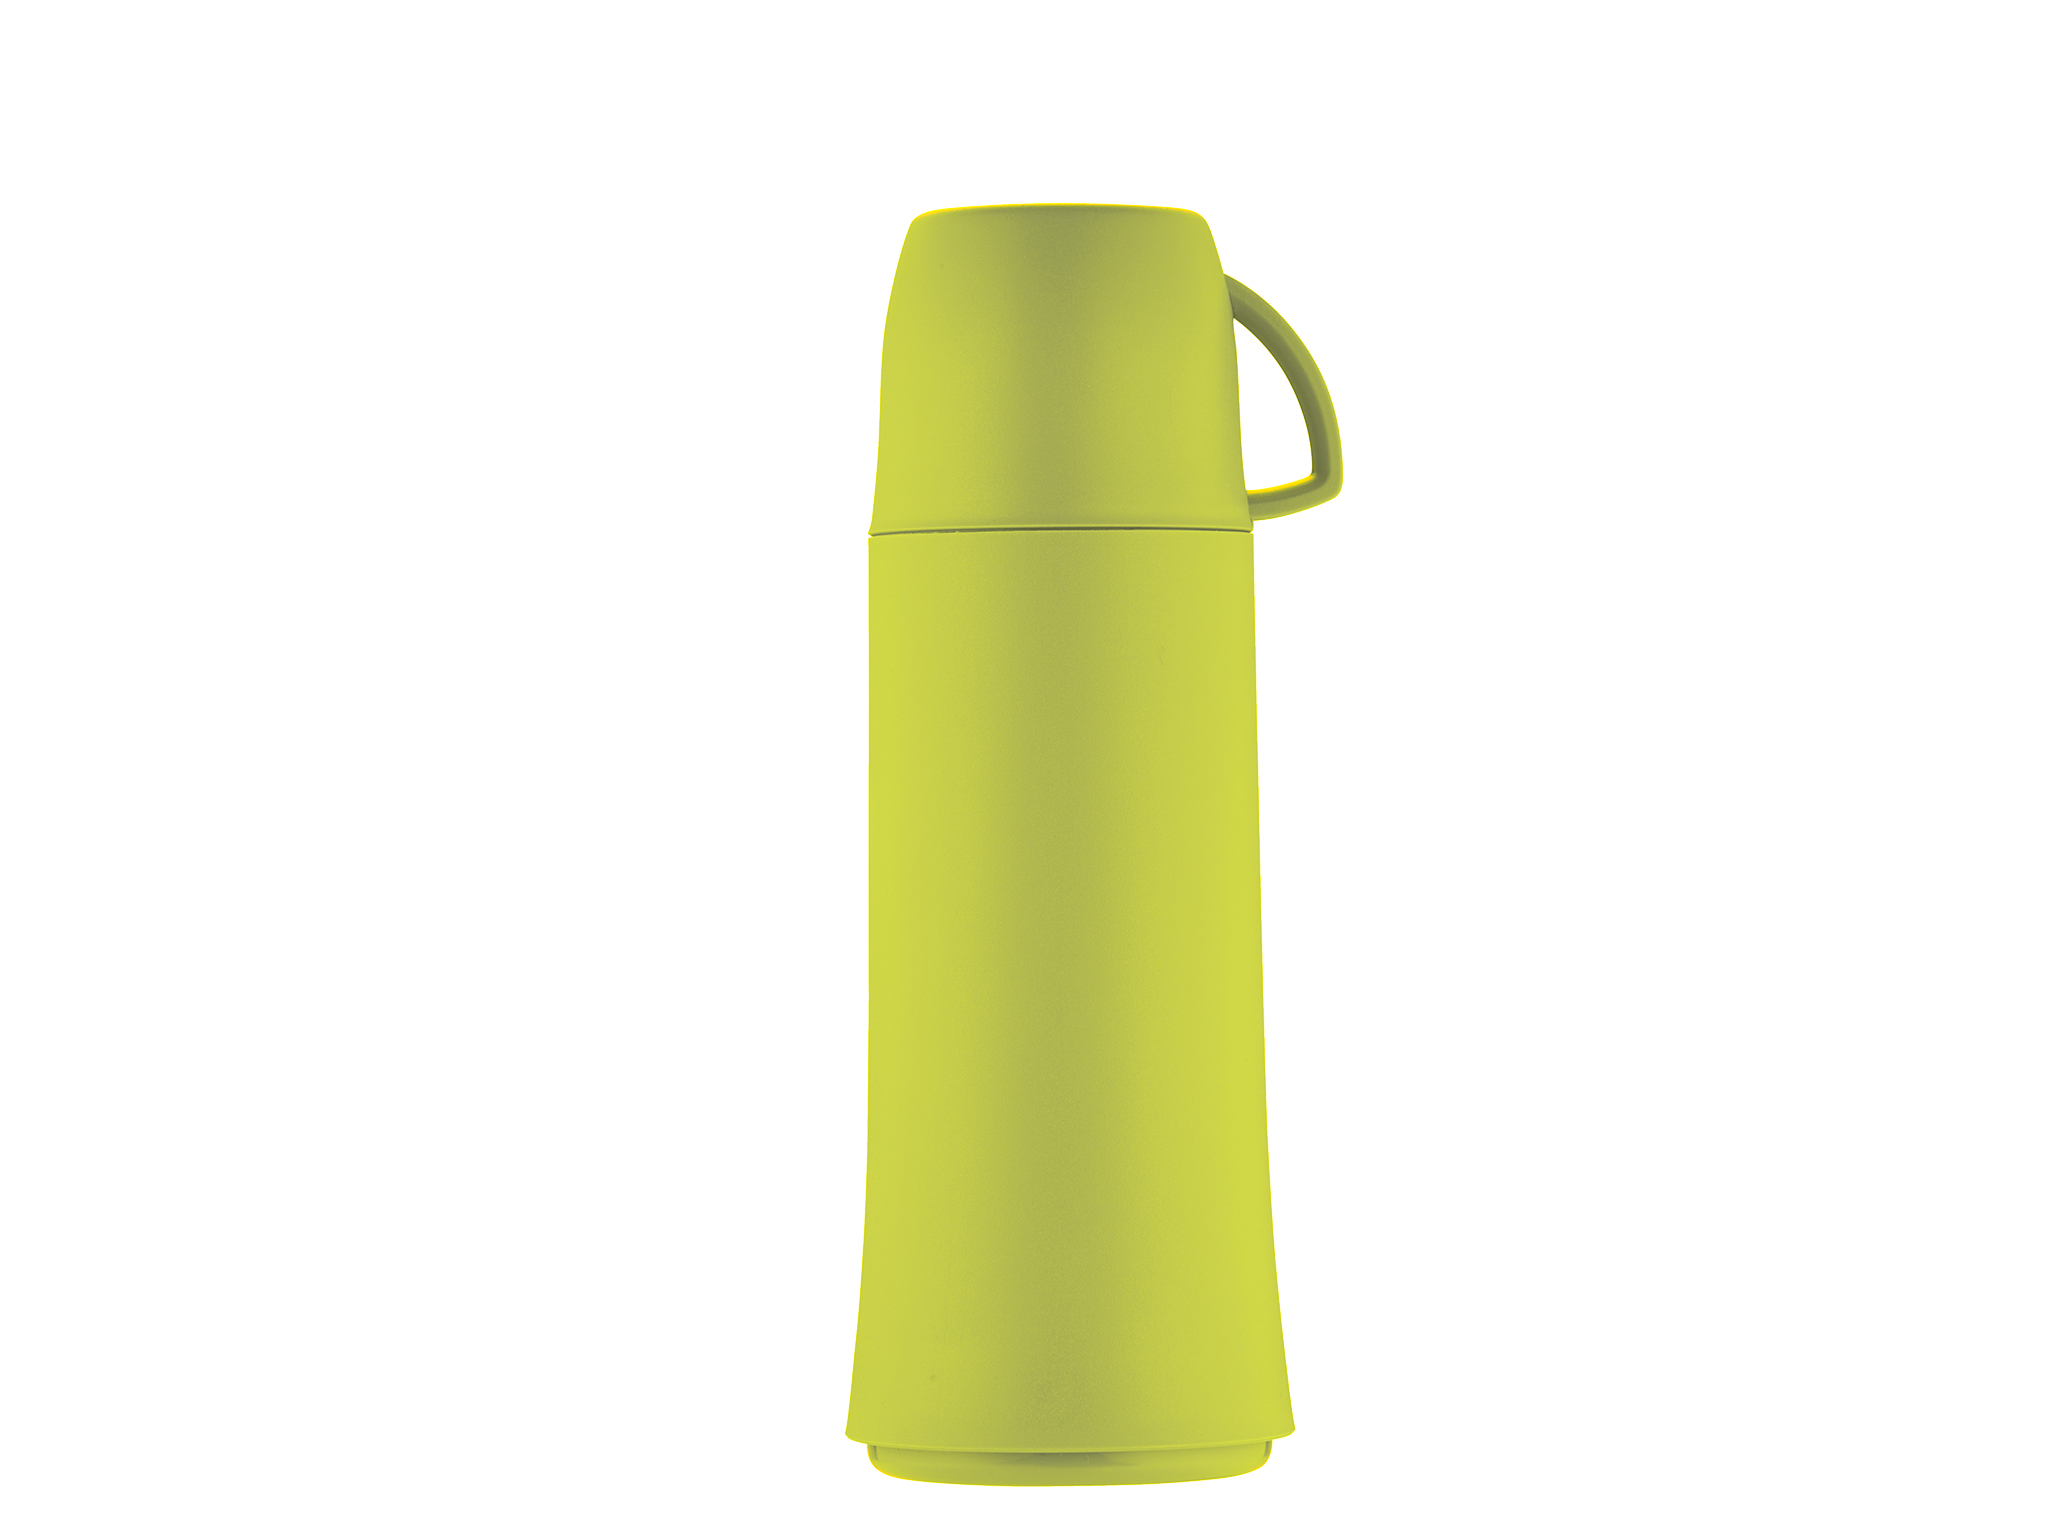 5453-193 - Vacuum flask Lemon Green 0.75 L KARIBIK - Helios